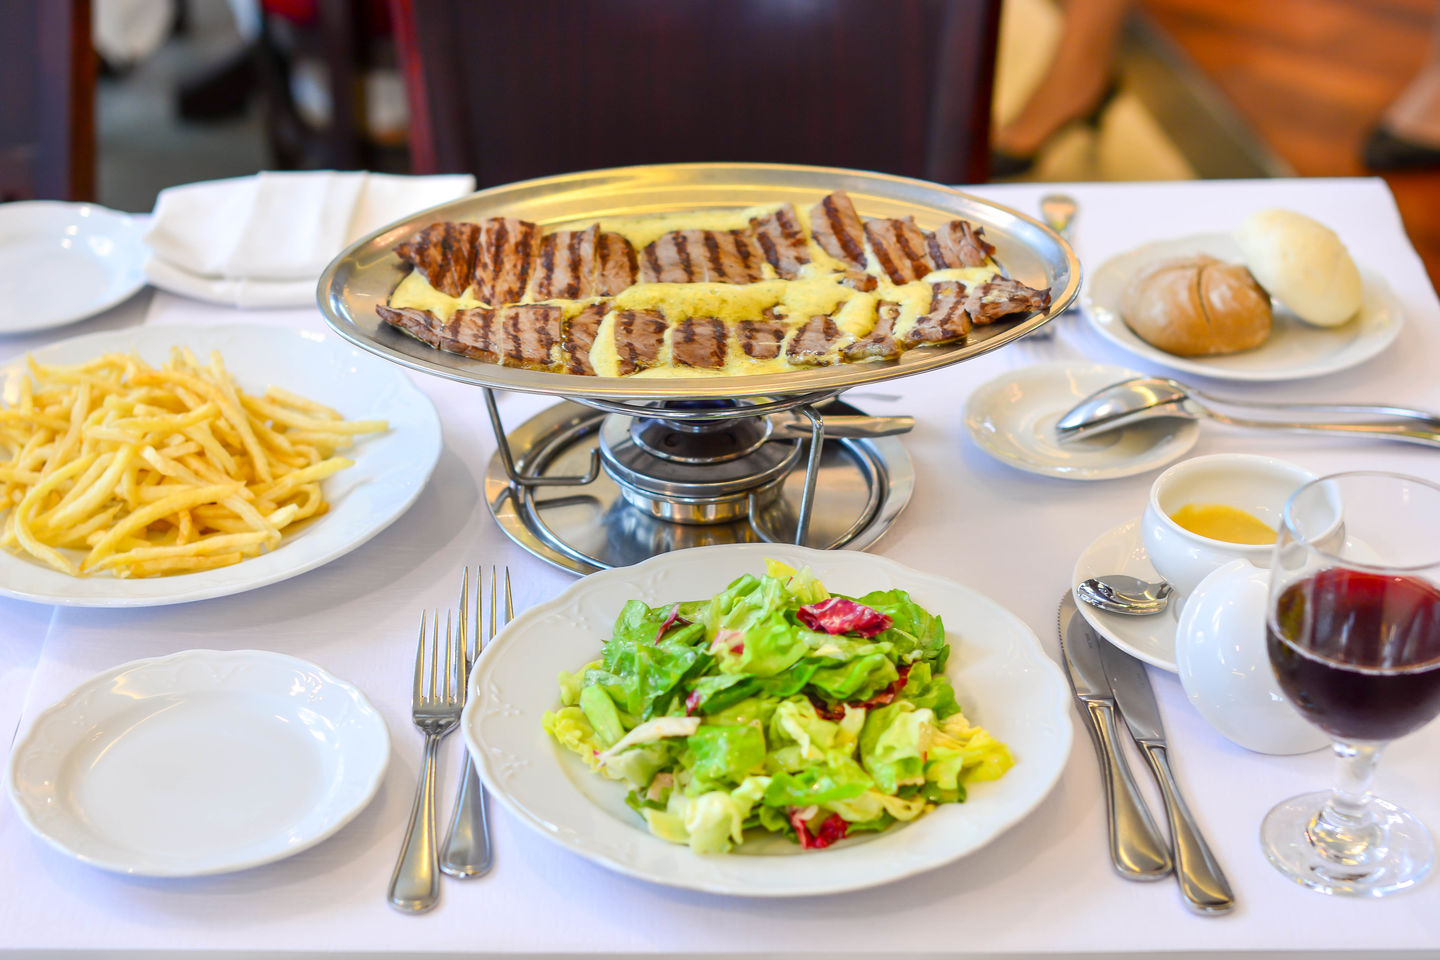 HiDubai-business-entrecote-cafe-de-paris-food-beverage-restaurants-bars-burj-khalifa-dubai-2